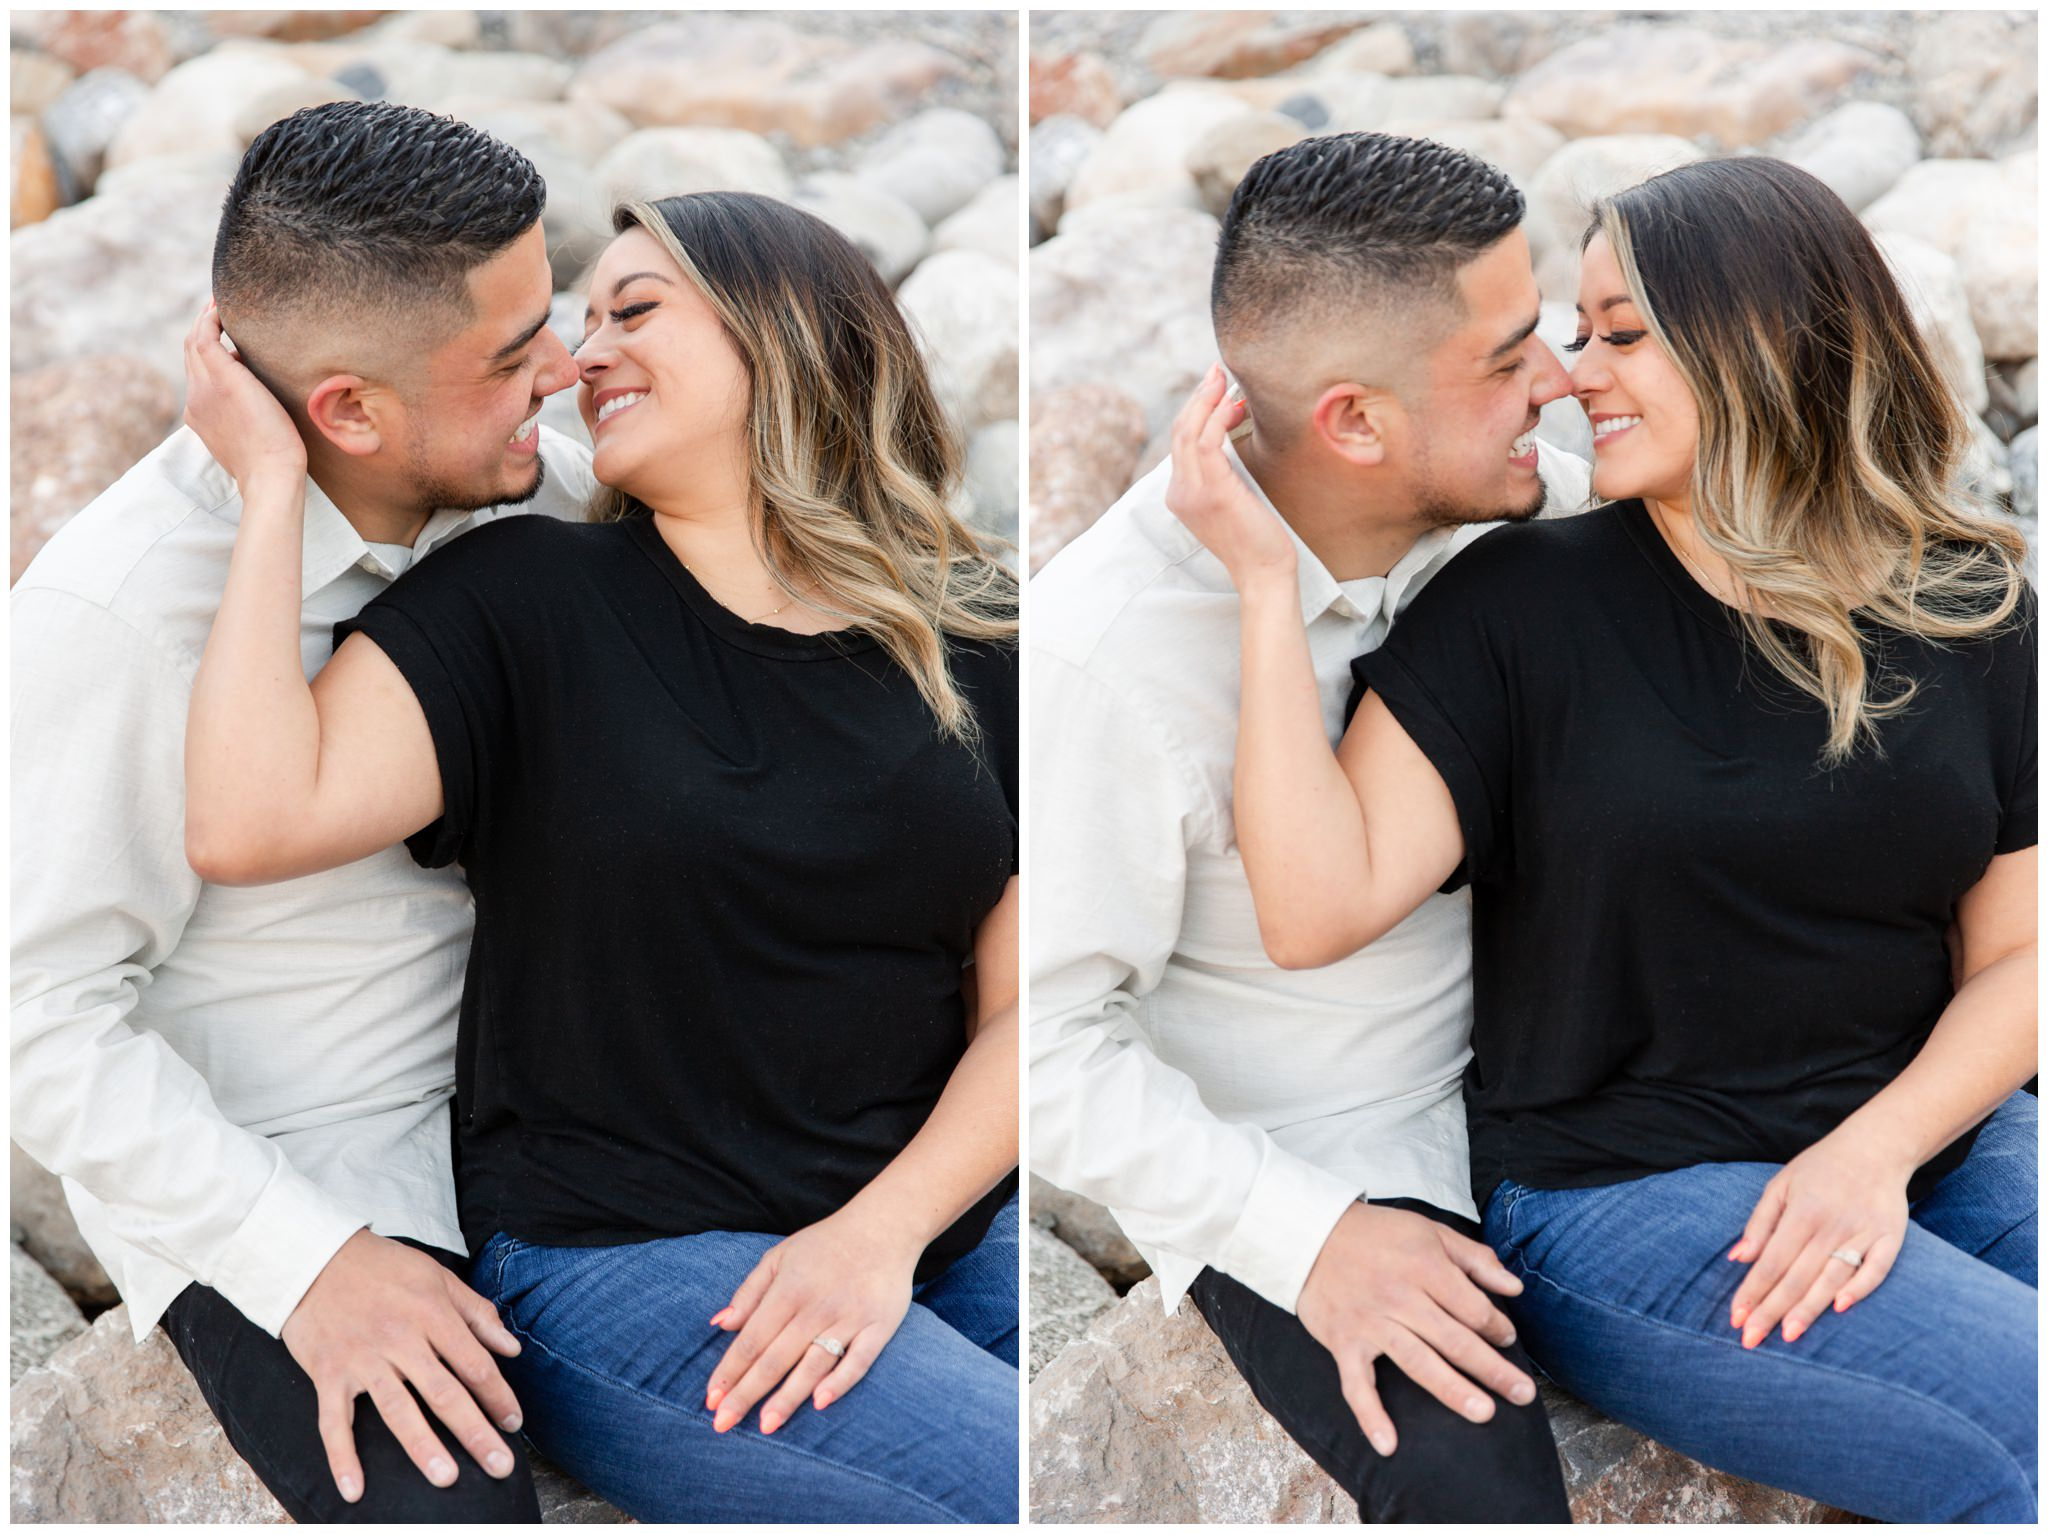 Bride and groom leaning in for a kiss during their engagement session at tibble fork